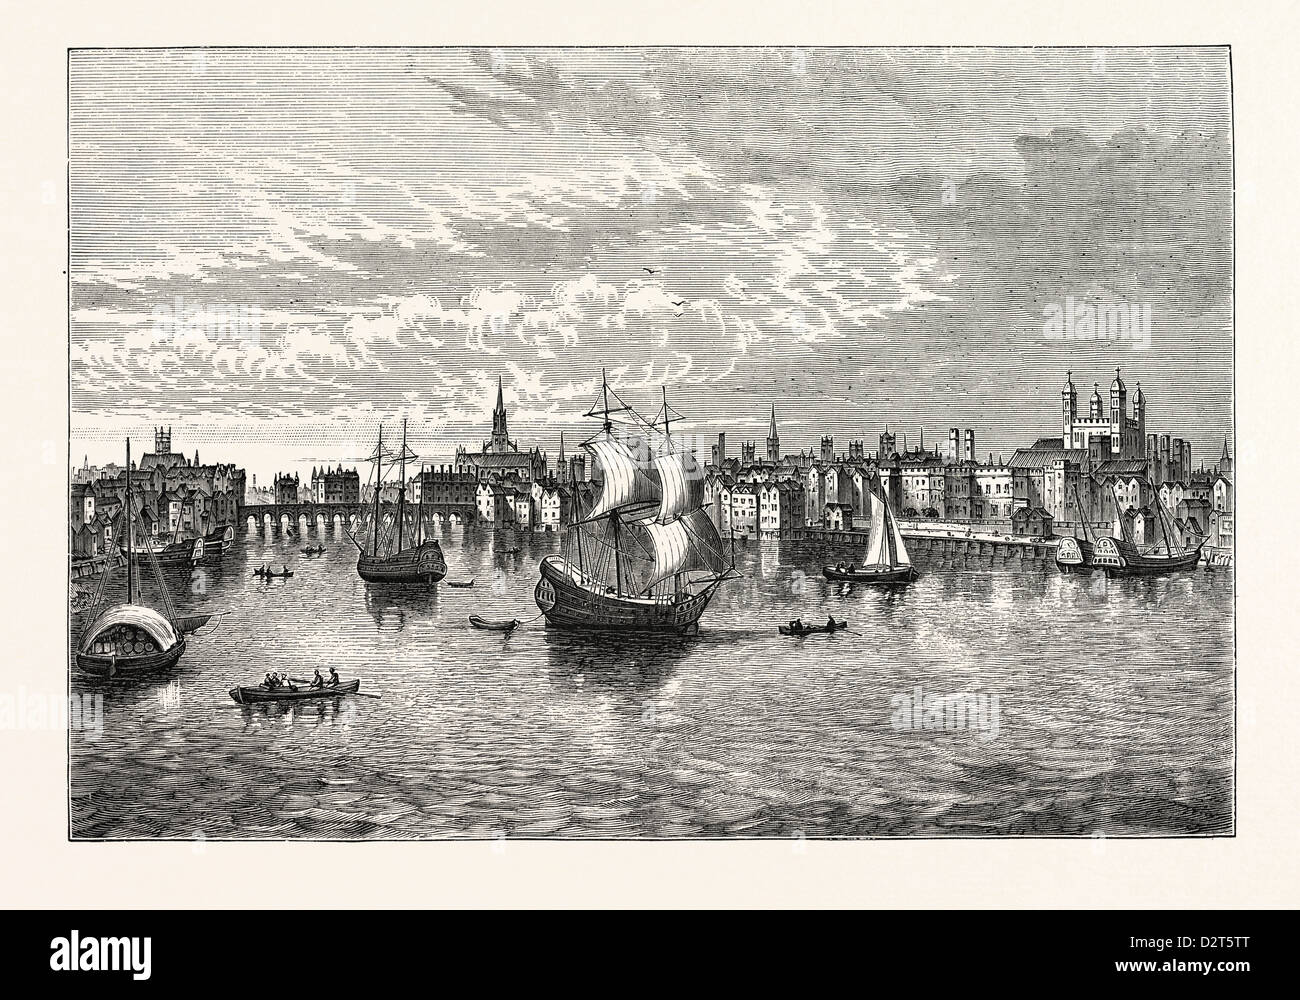 SOUTH-EAST VIEW OF LONDON IN 1550. - Stock Image